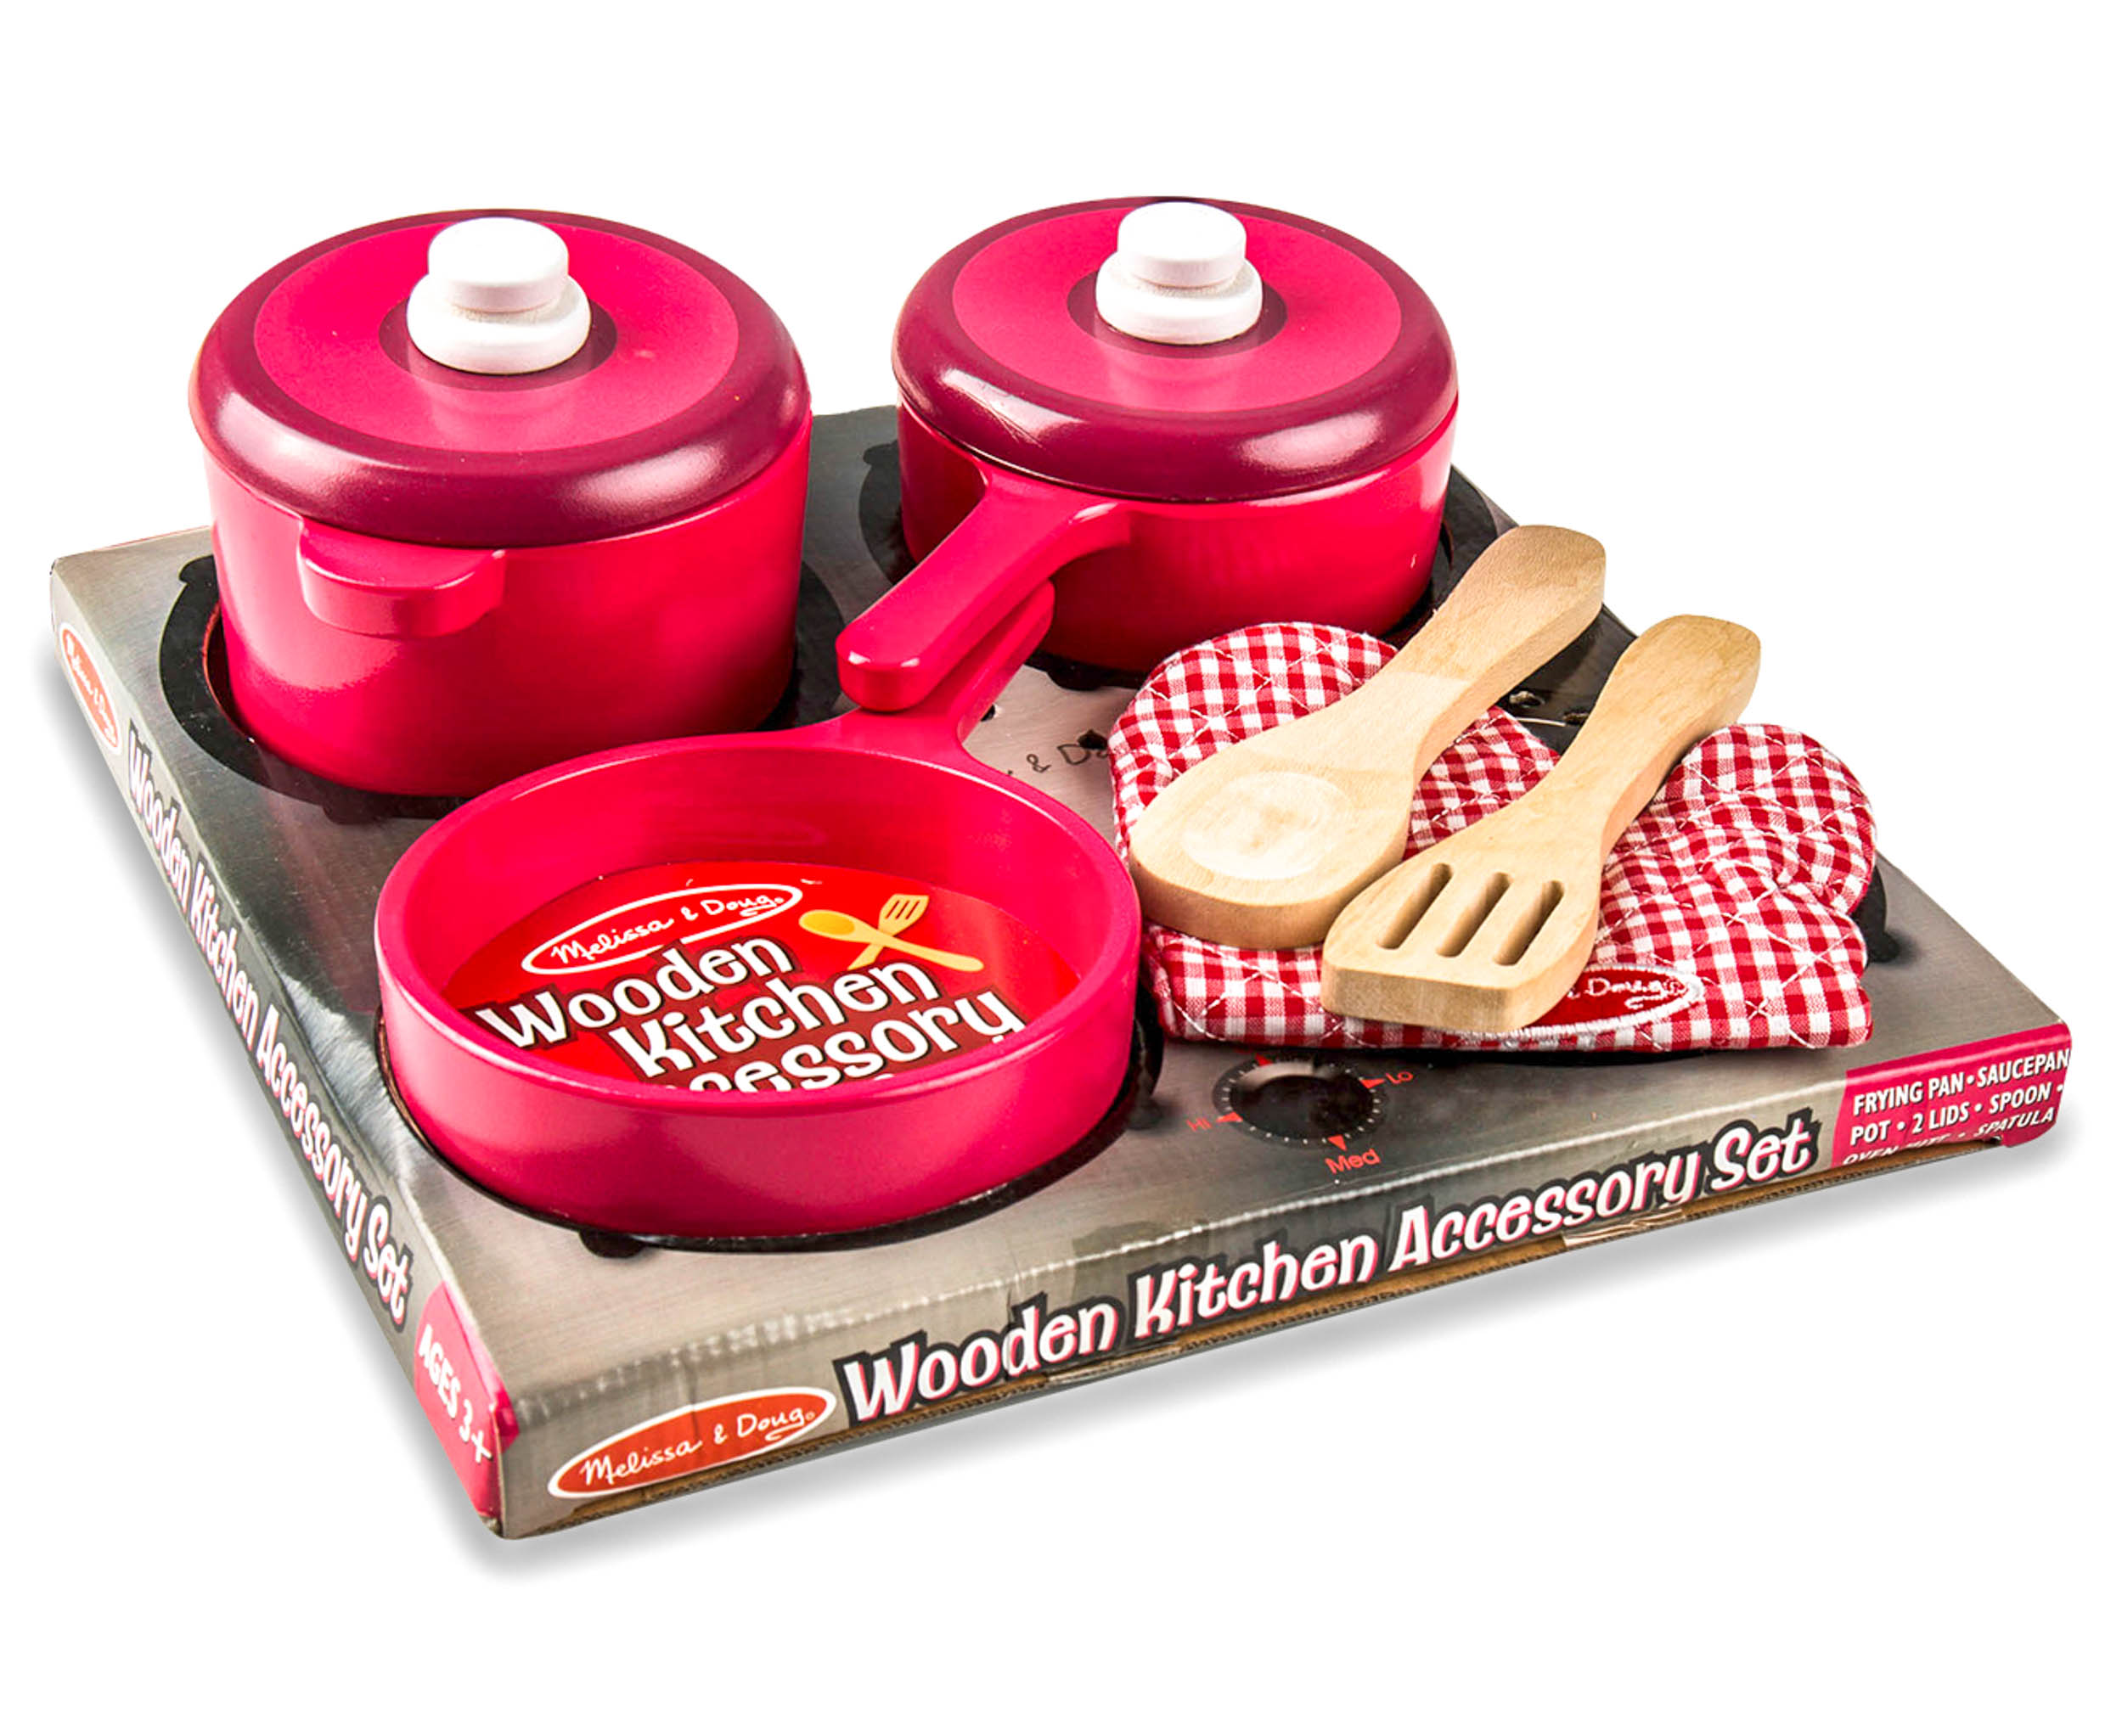 wooden kitchen accessory set catchoftheday au amp doug wooden kitchen 1629